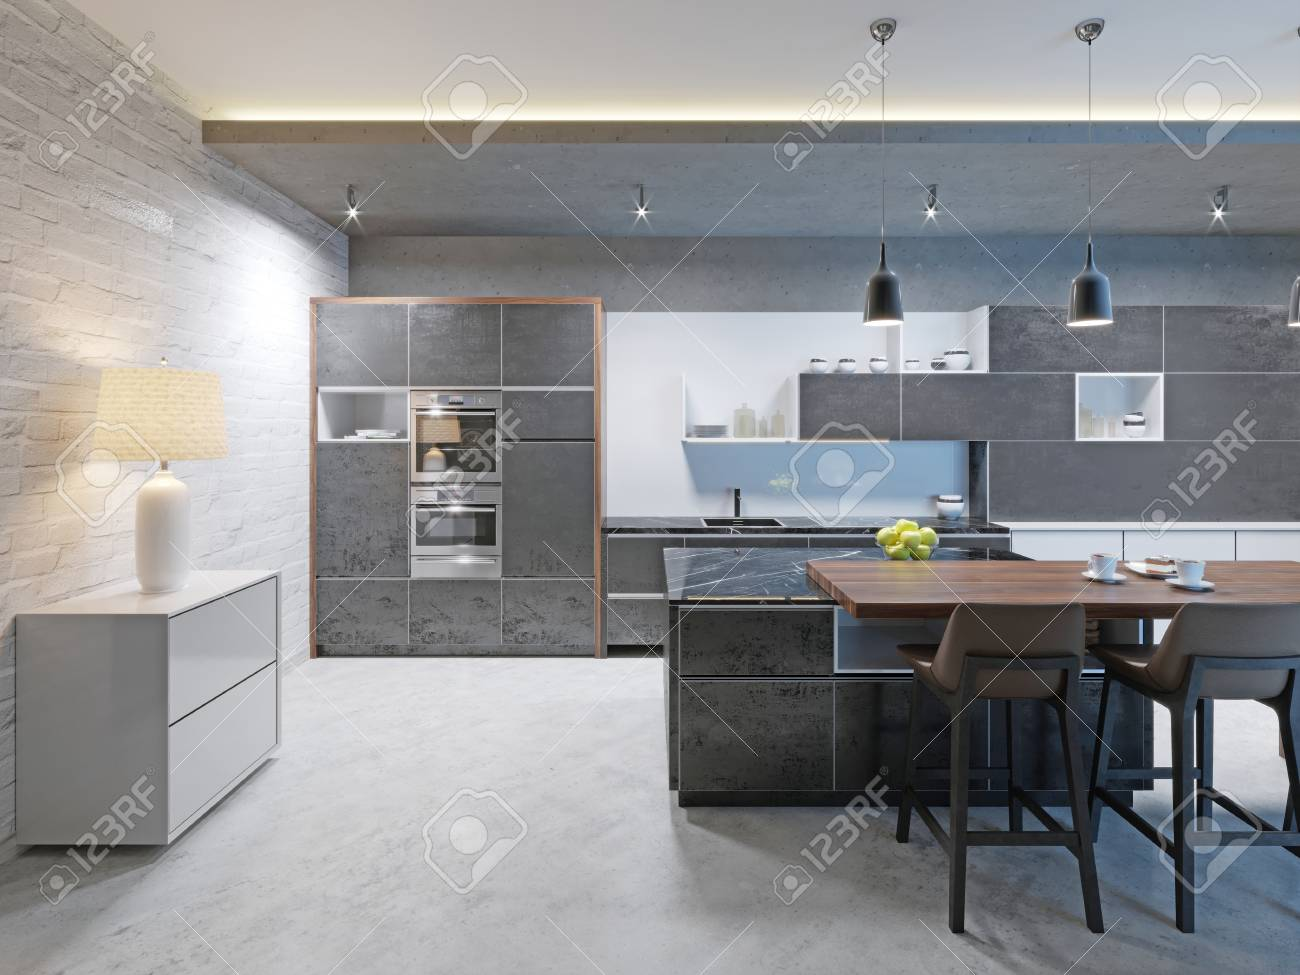 Modern Kitchen Design With A Long Center Island And Bar Table ...